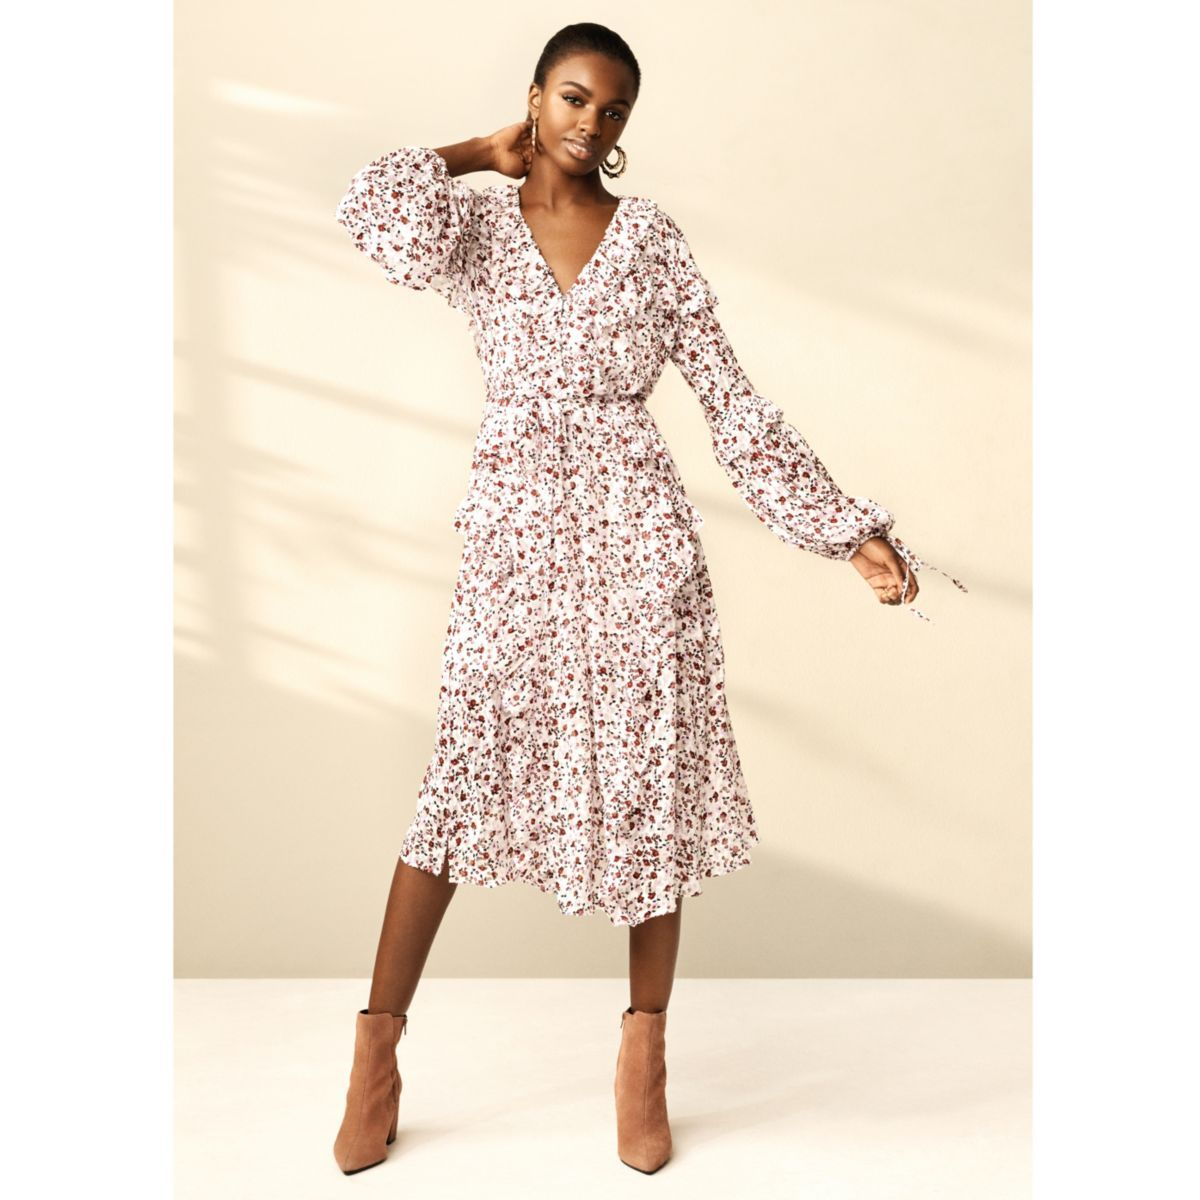 Ri Studio Woven Fabric Ditsy Floral Print Frill Detail Long Sleeve With Tie Cuff V Neck Maxi Length Our Model W Guest Dresses Dresses Wedding Guest Outfit Fall [ 1200 x 1200 Pixel ]